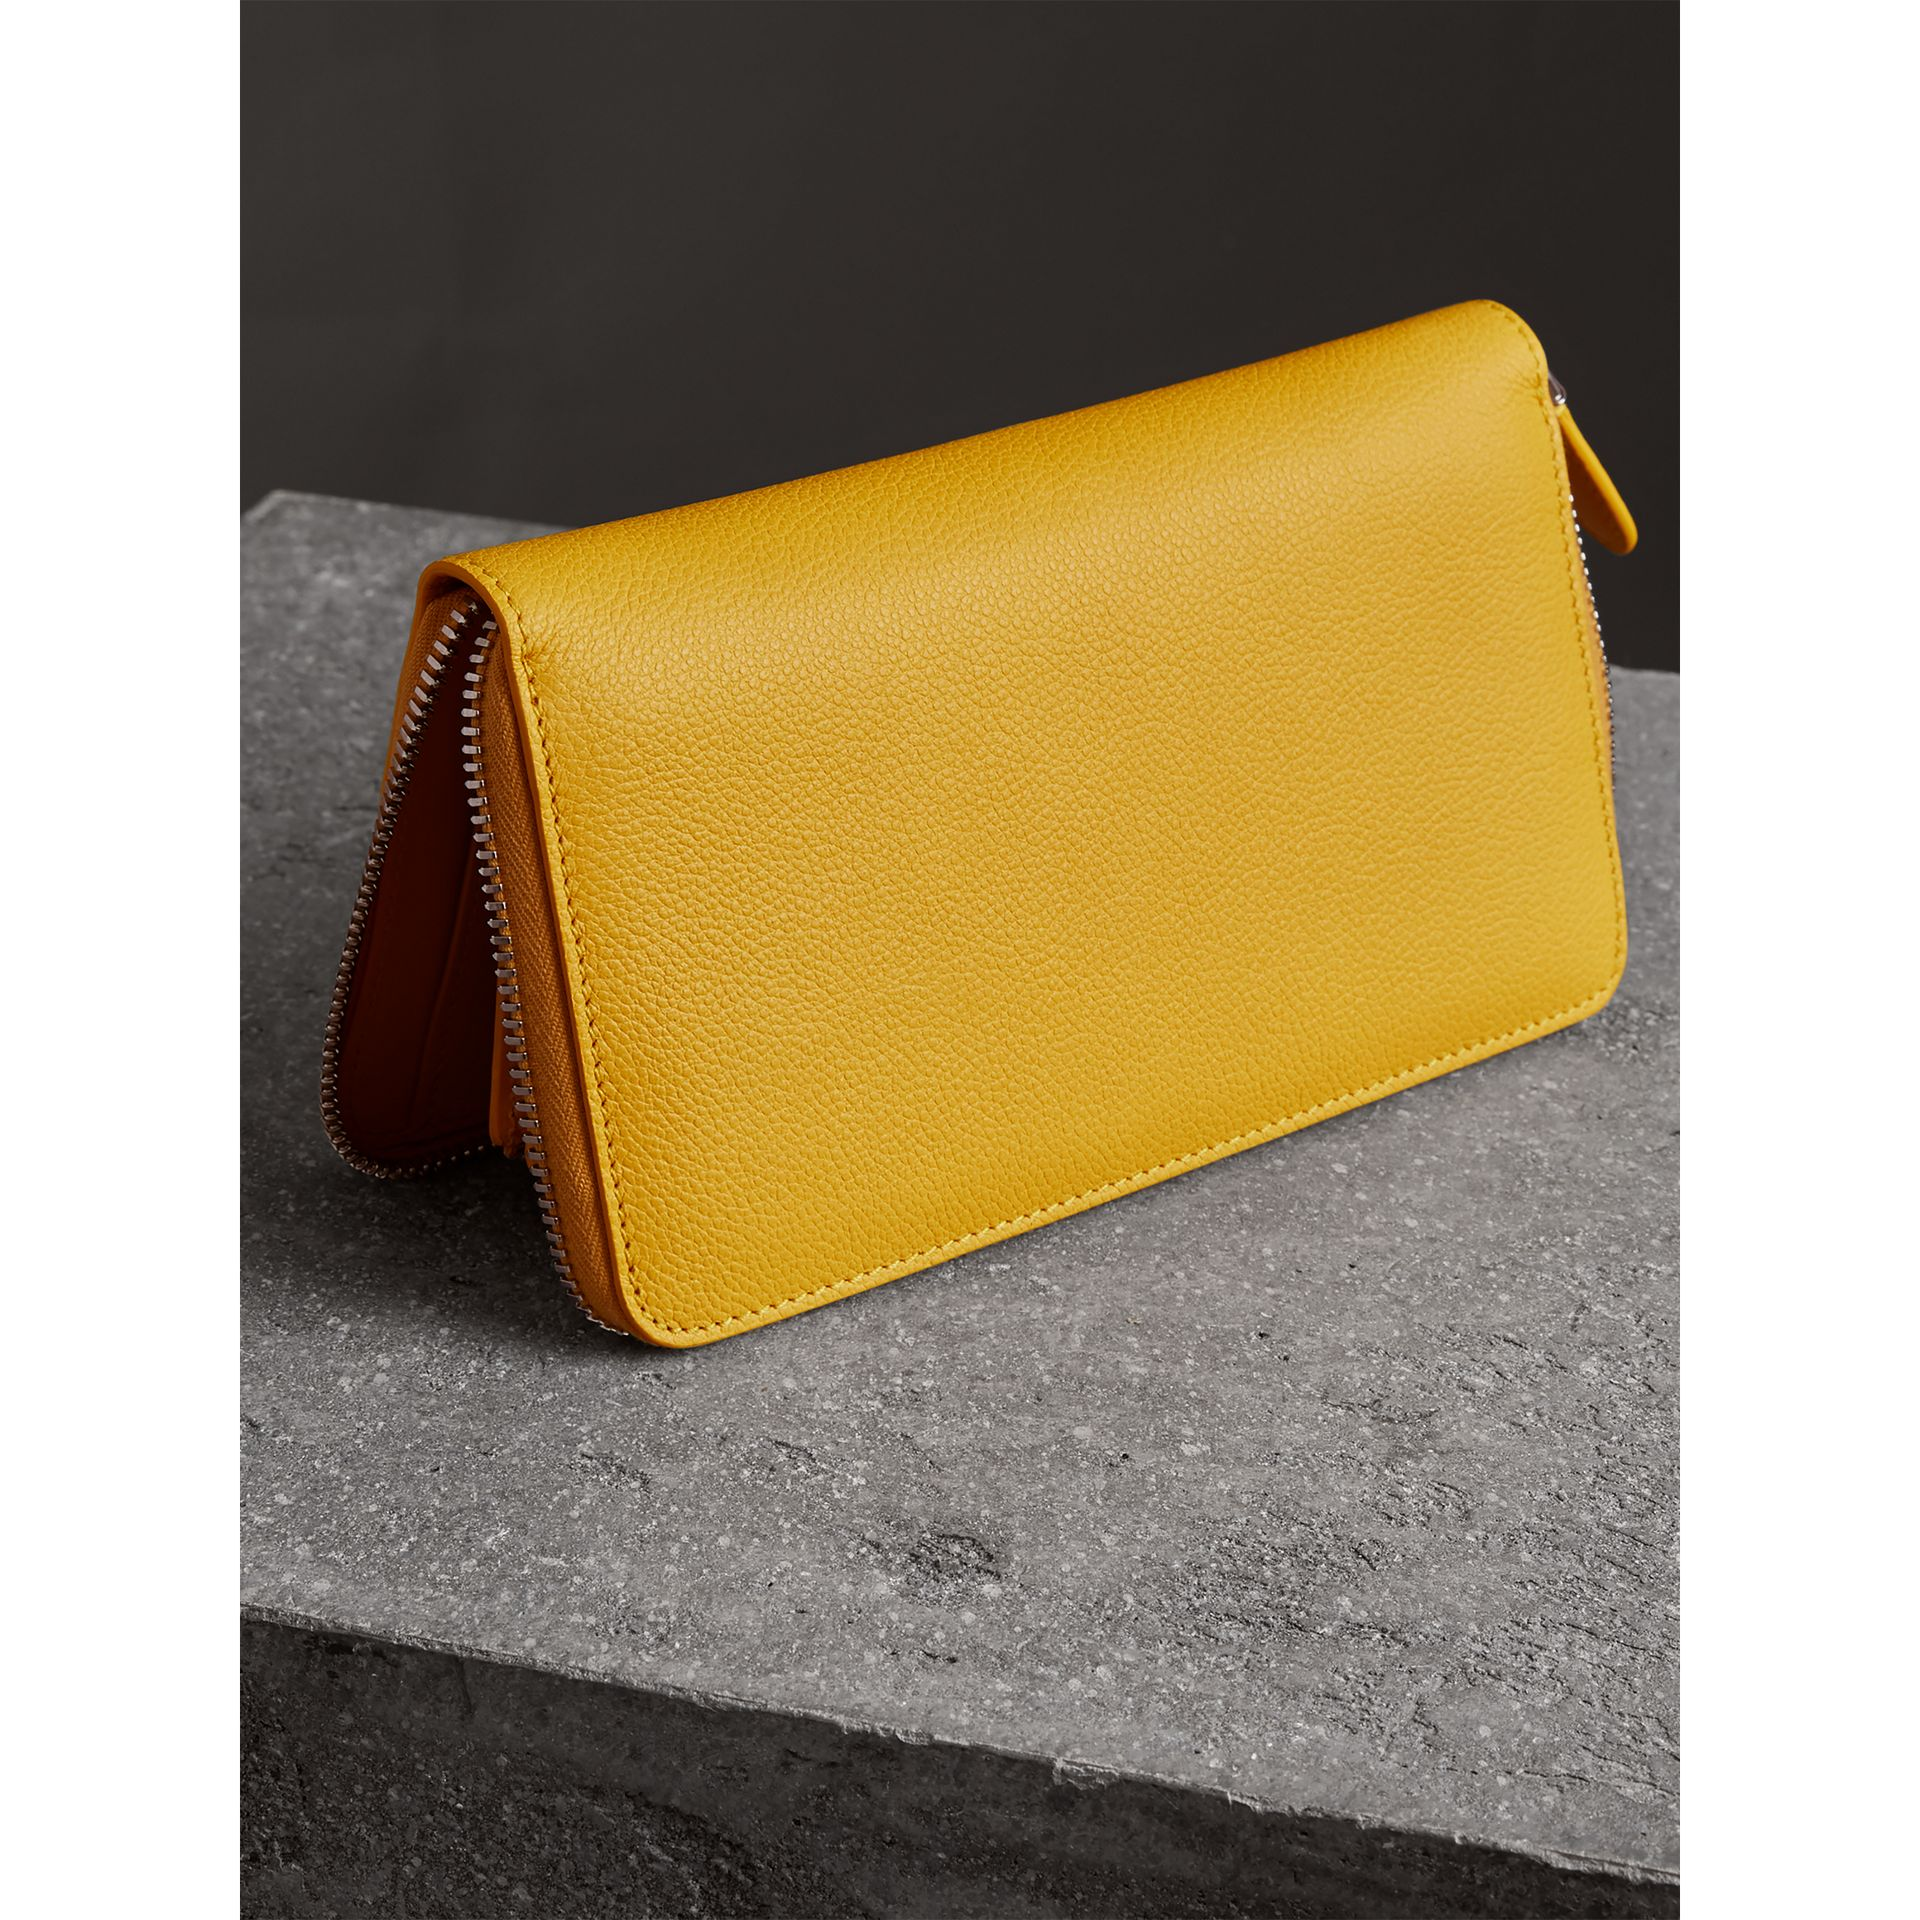 Burberry Embossed Leather Zip Around Wallet: Grainy Leather Ziparound Wallet In Bright Ochre Yellow